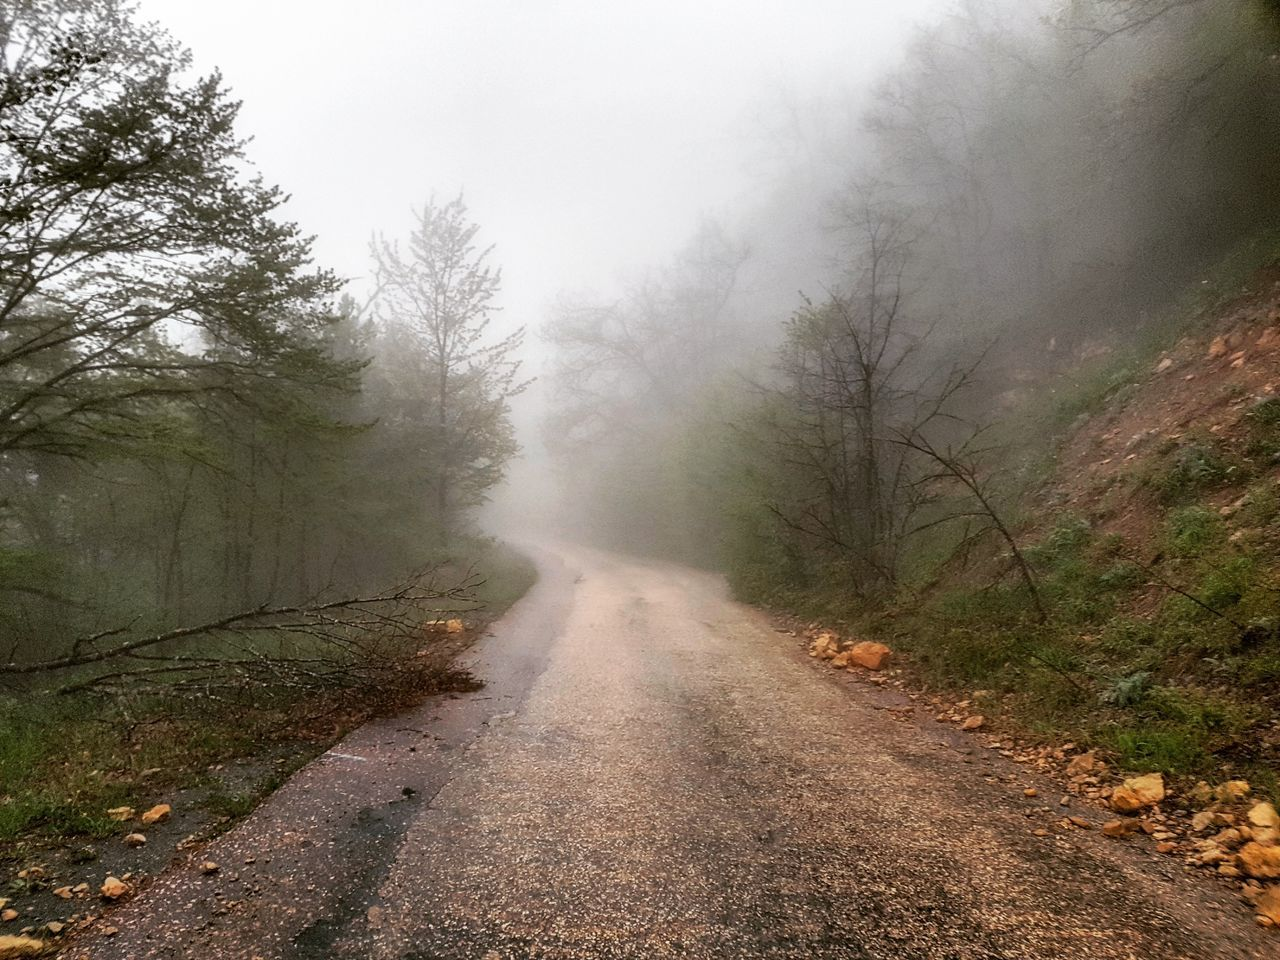 fog, the way forward, foggy, diminishing perspective, mist, nature, road, day, no people, outdoors, landscape, beauty in nature, tree, scenics, mountain, hazy, sky